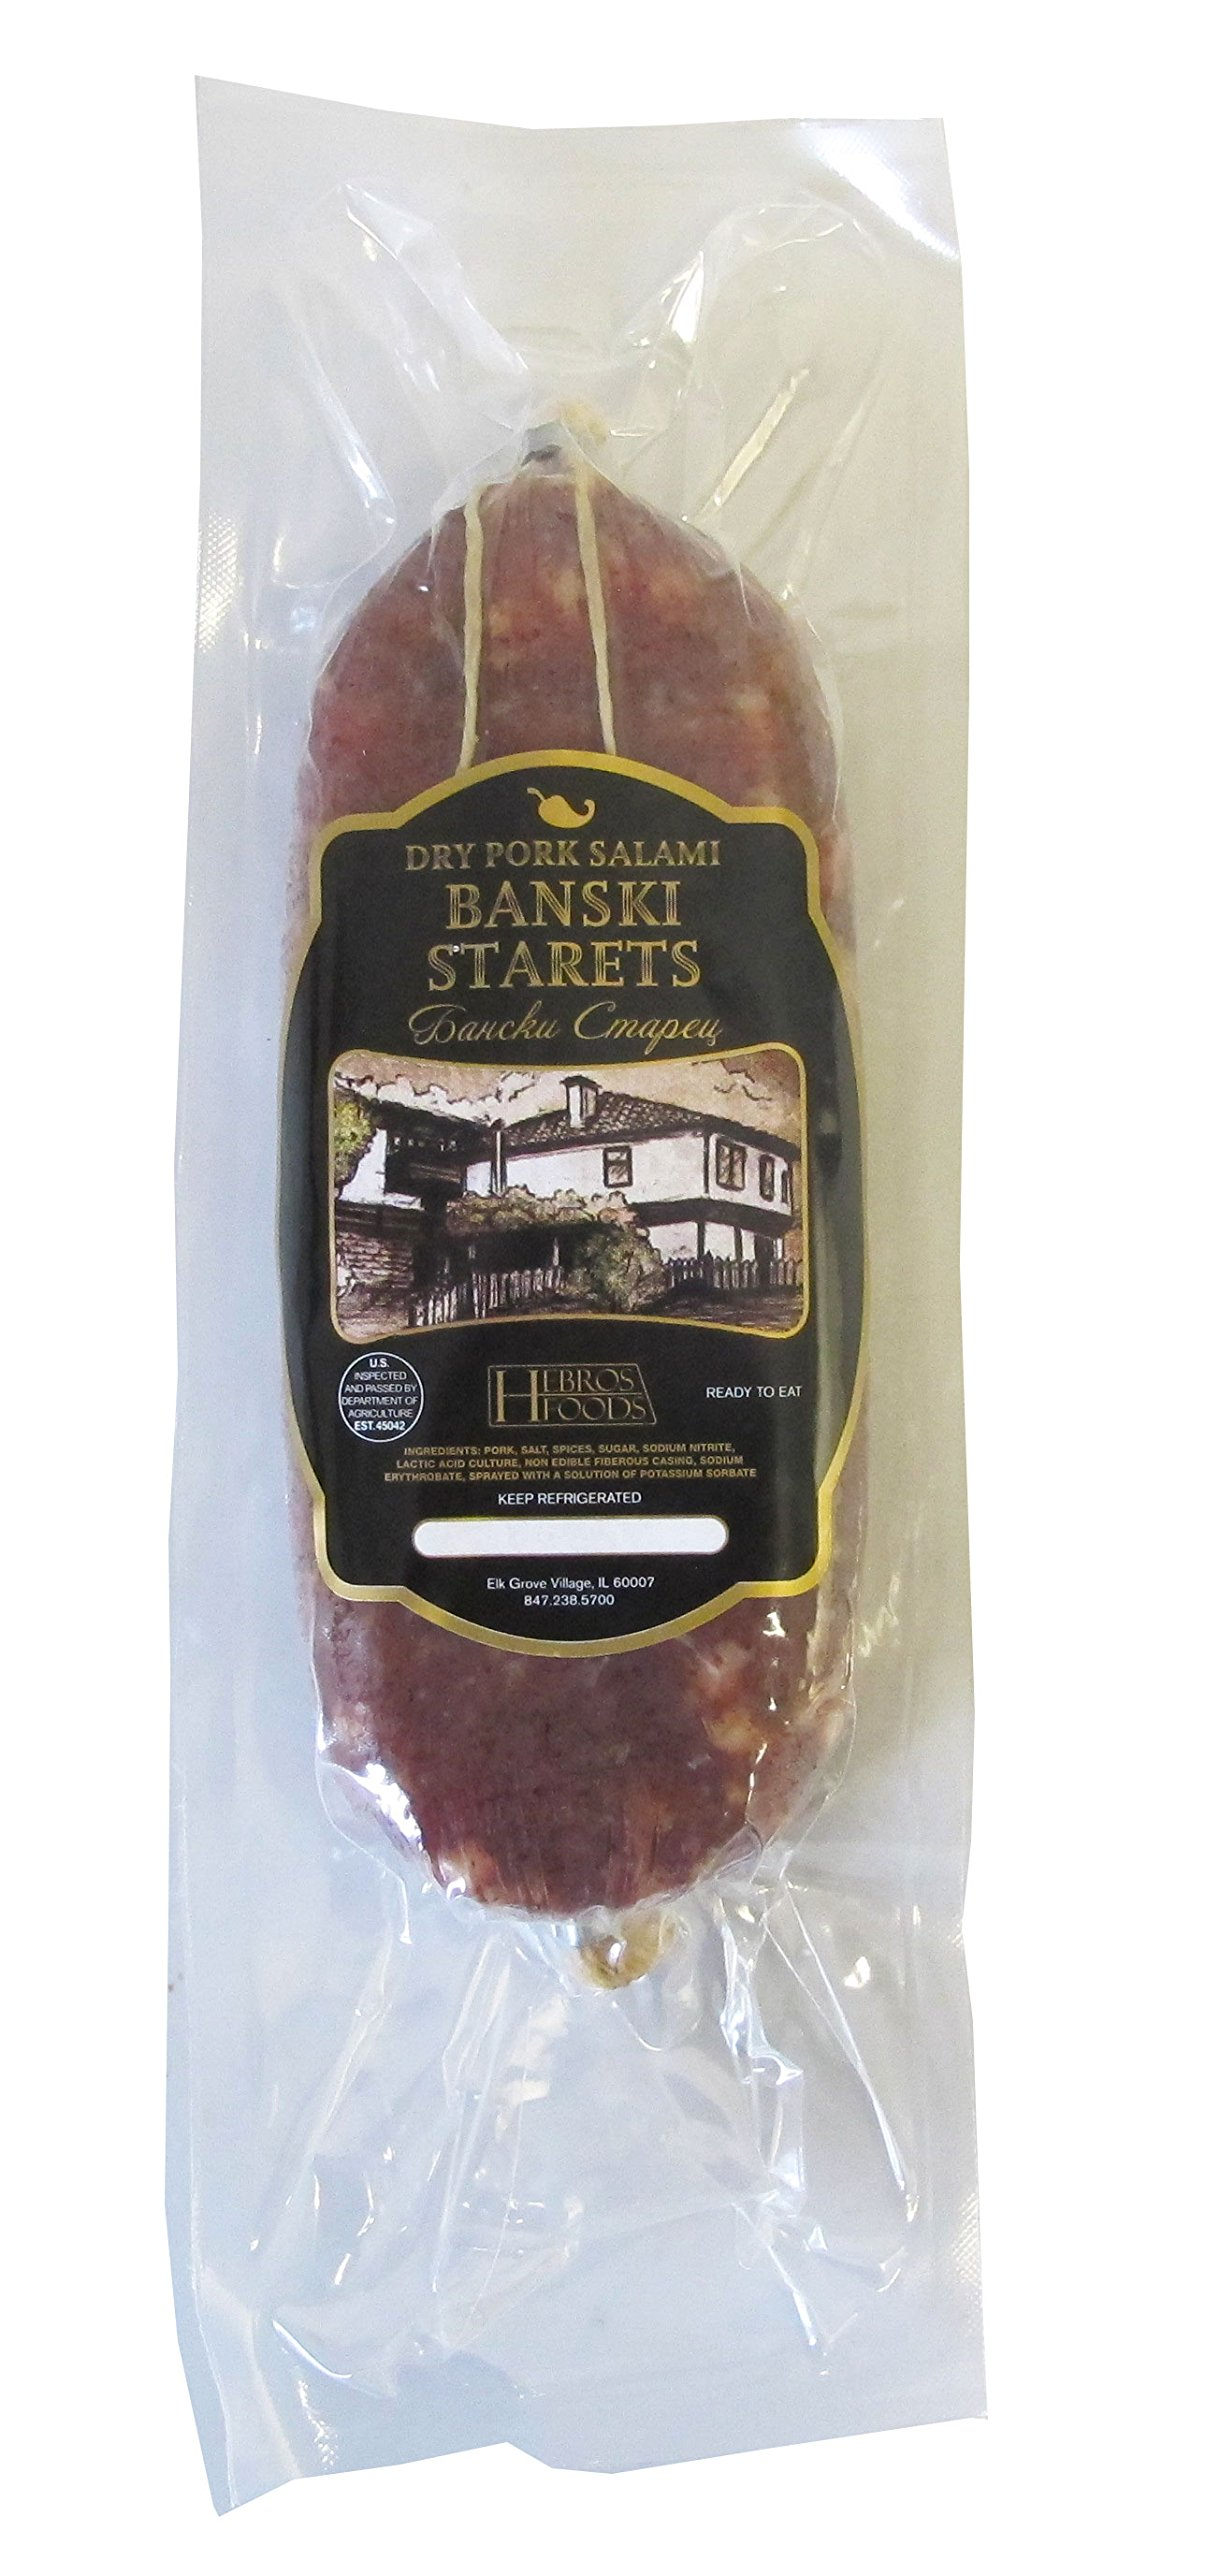 DRY CURED PORK SALAMI (BANSKI STARETS) - 2 PC - EACH PIECE B/N 0.68-0.78 LB by Hebros Foods